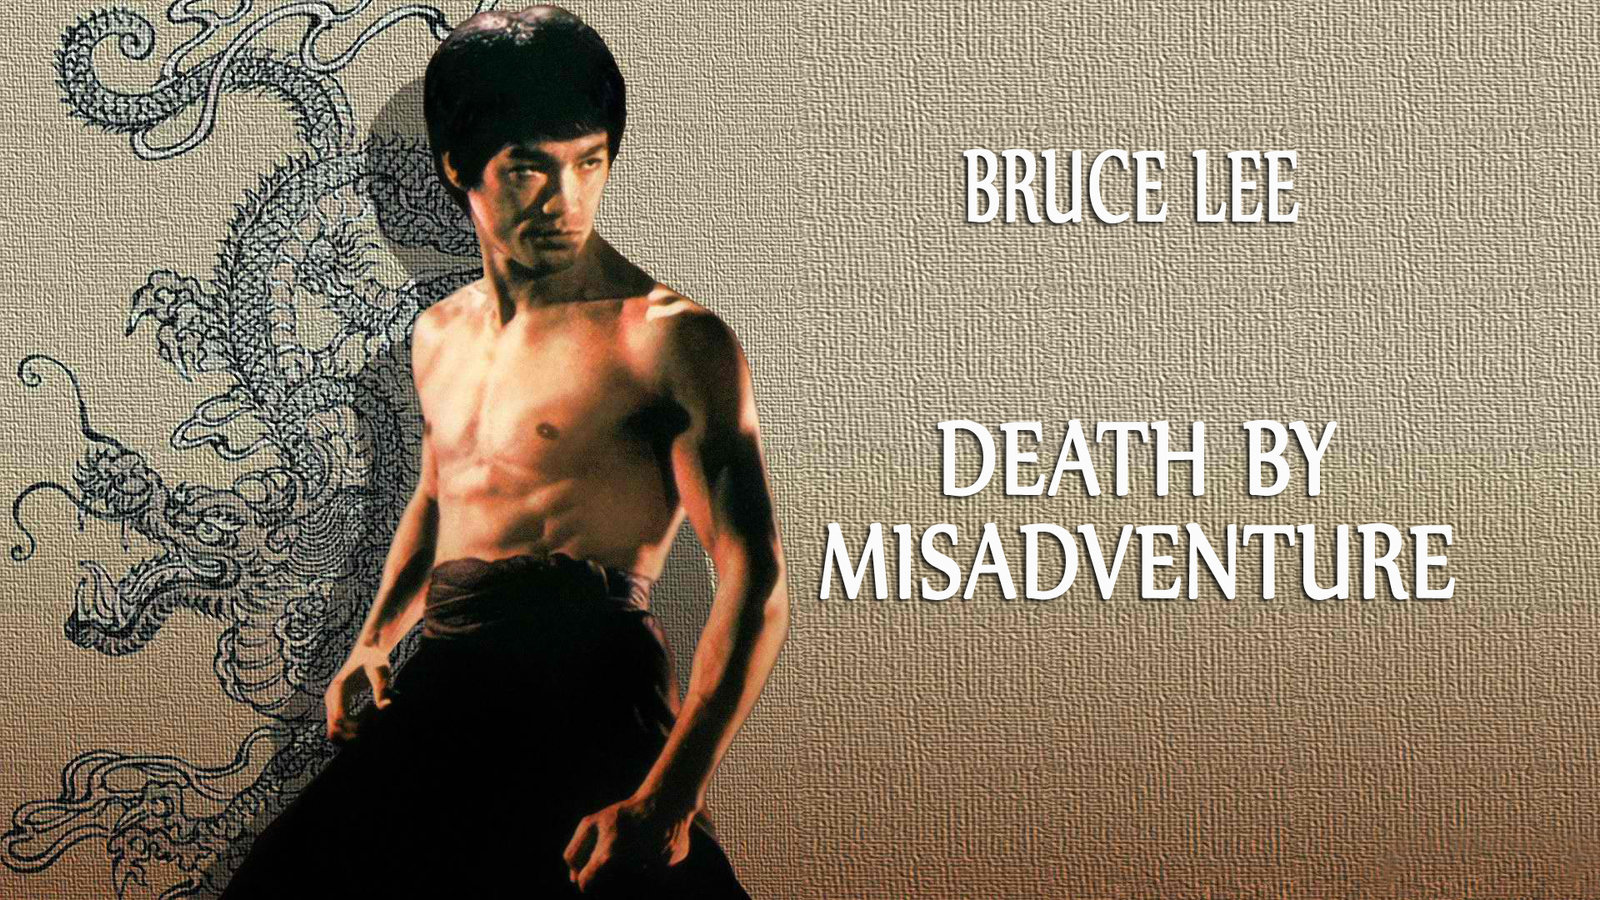 Death by Misadventure - The Life and Death of Bruce Lee